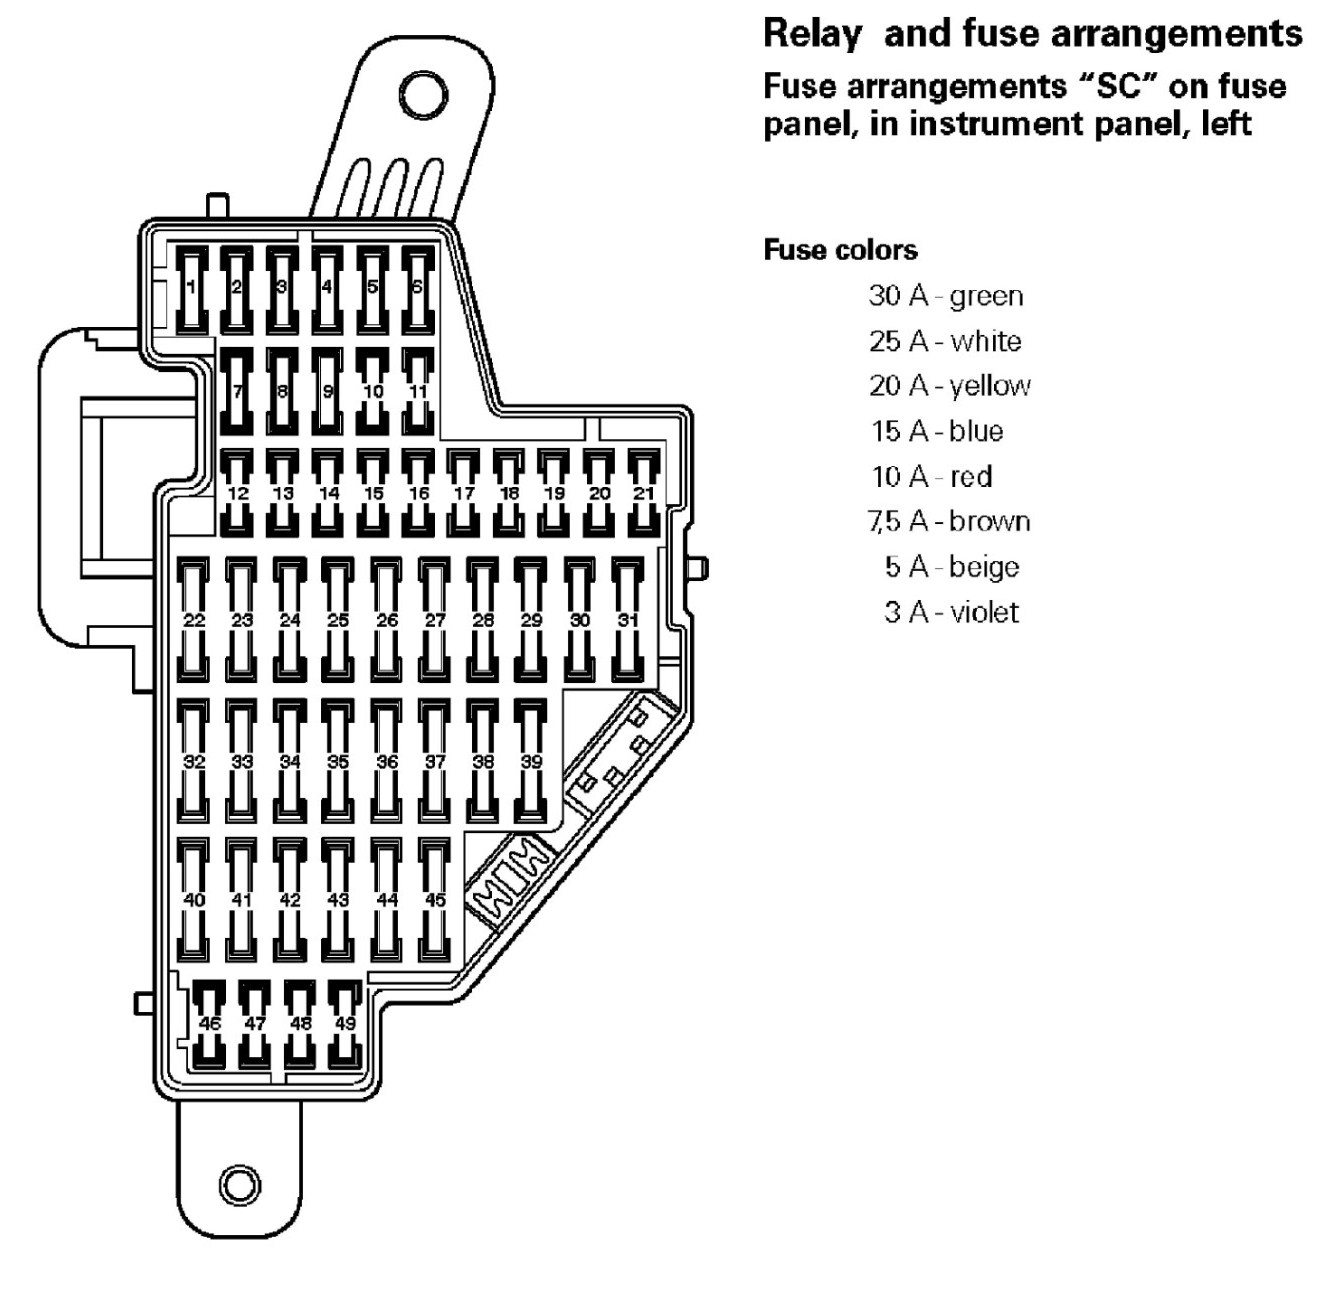 hight resolution of vw jetta 2006 fuse box diagram wiring diagram expert 2006 jetta tdi fuse box location jetta fuse box 2006